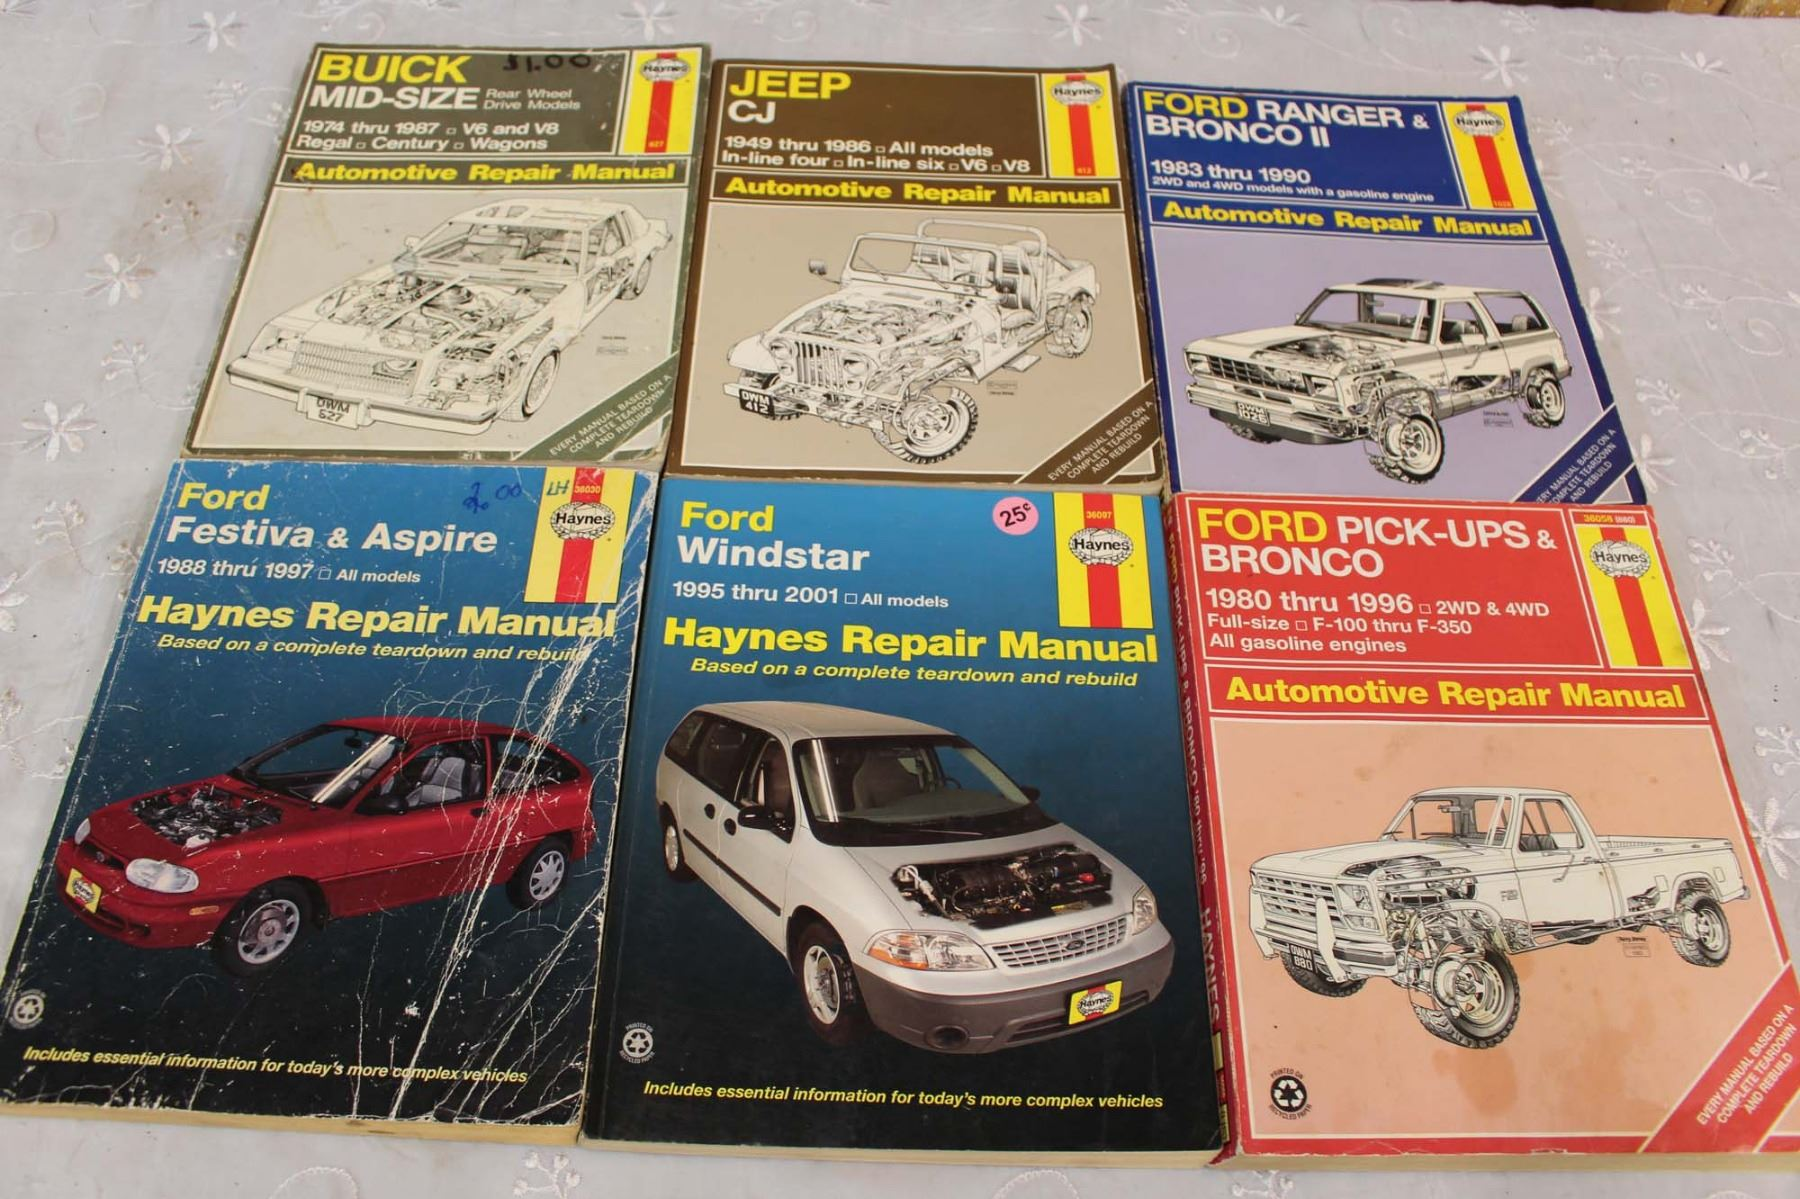 Image 1 : (6) Haynes Auto Manuals (Ford, Jeep, Buick) ...